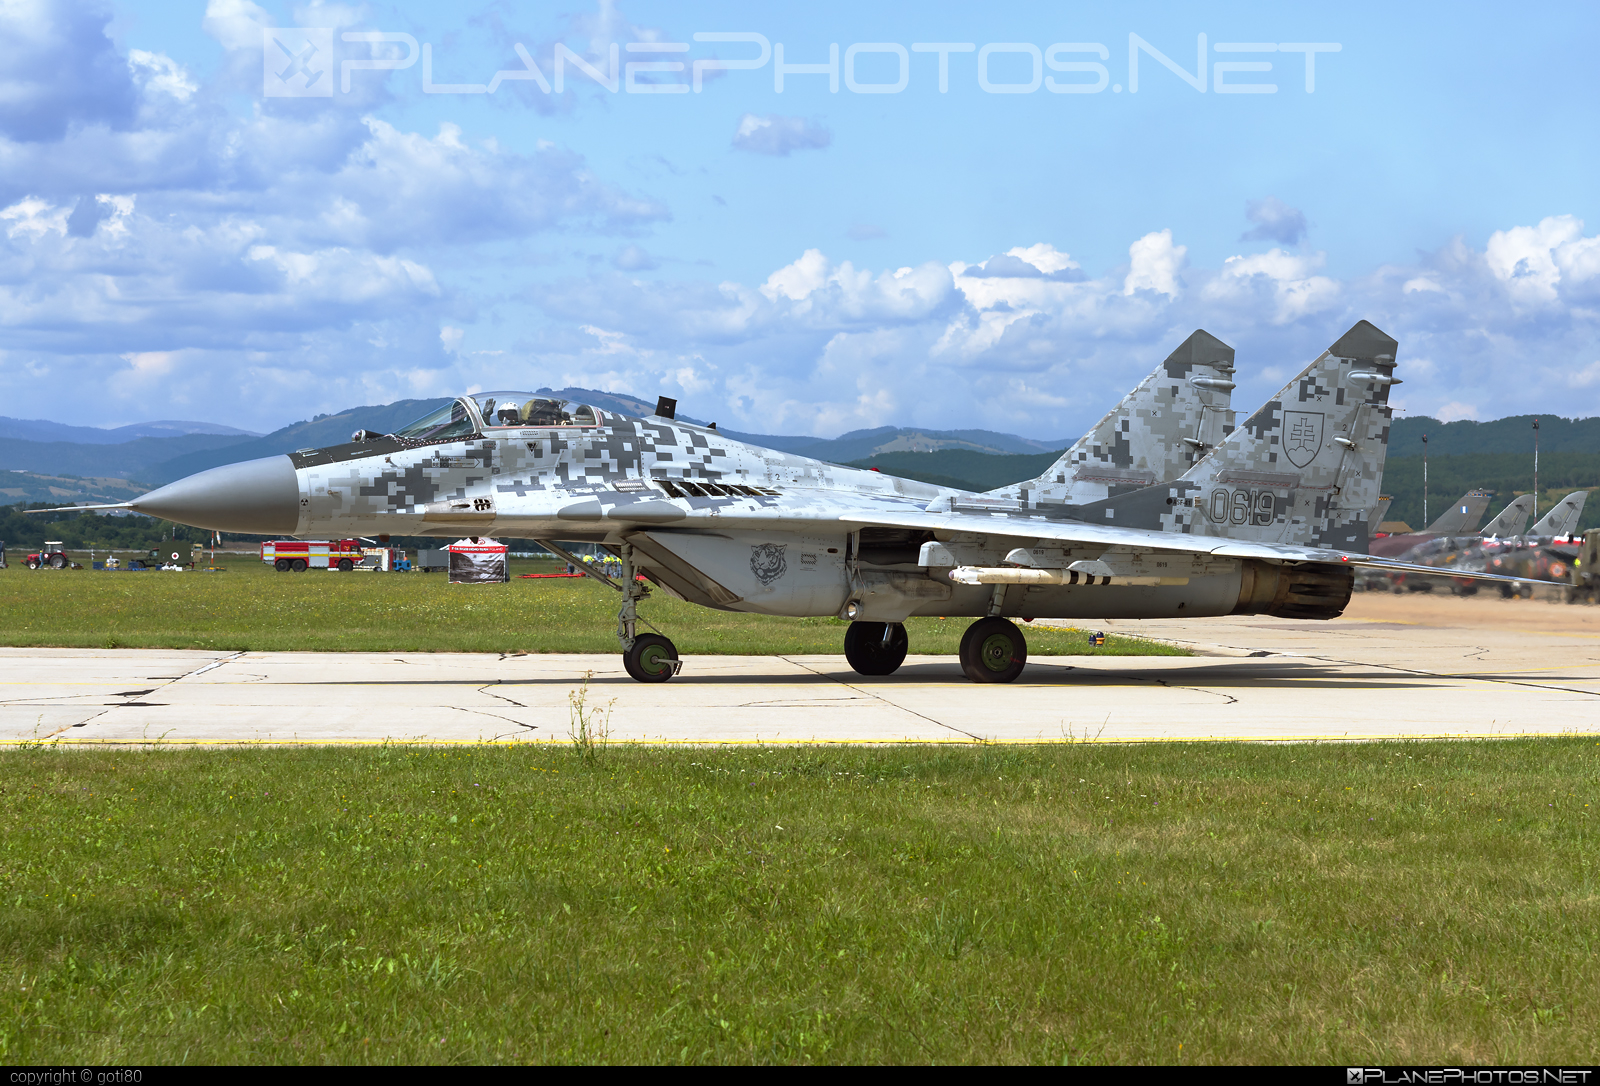 Mikoyan-Gurevich MiG-29AS - 0619 operated by Vzdušné sily OS SR (Slovak Air Force) #mig #mig29 #mig29as #mikoyangurevich #siaf2019 #slovakairforce #vzdusnesilyossr